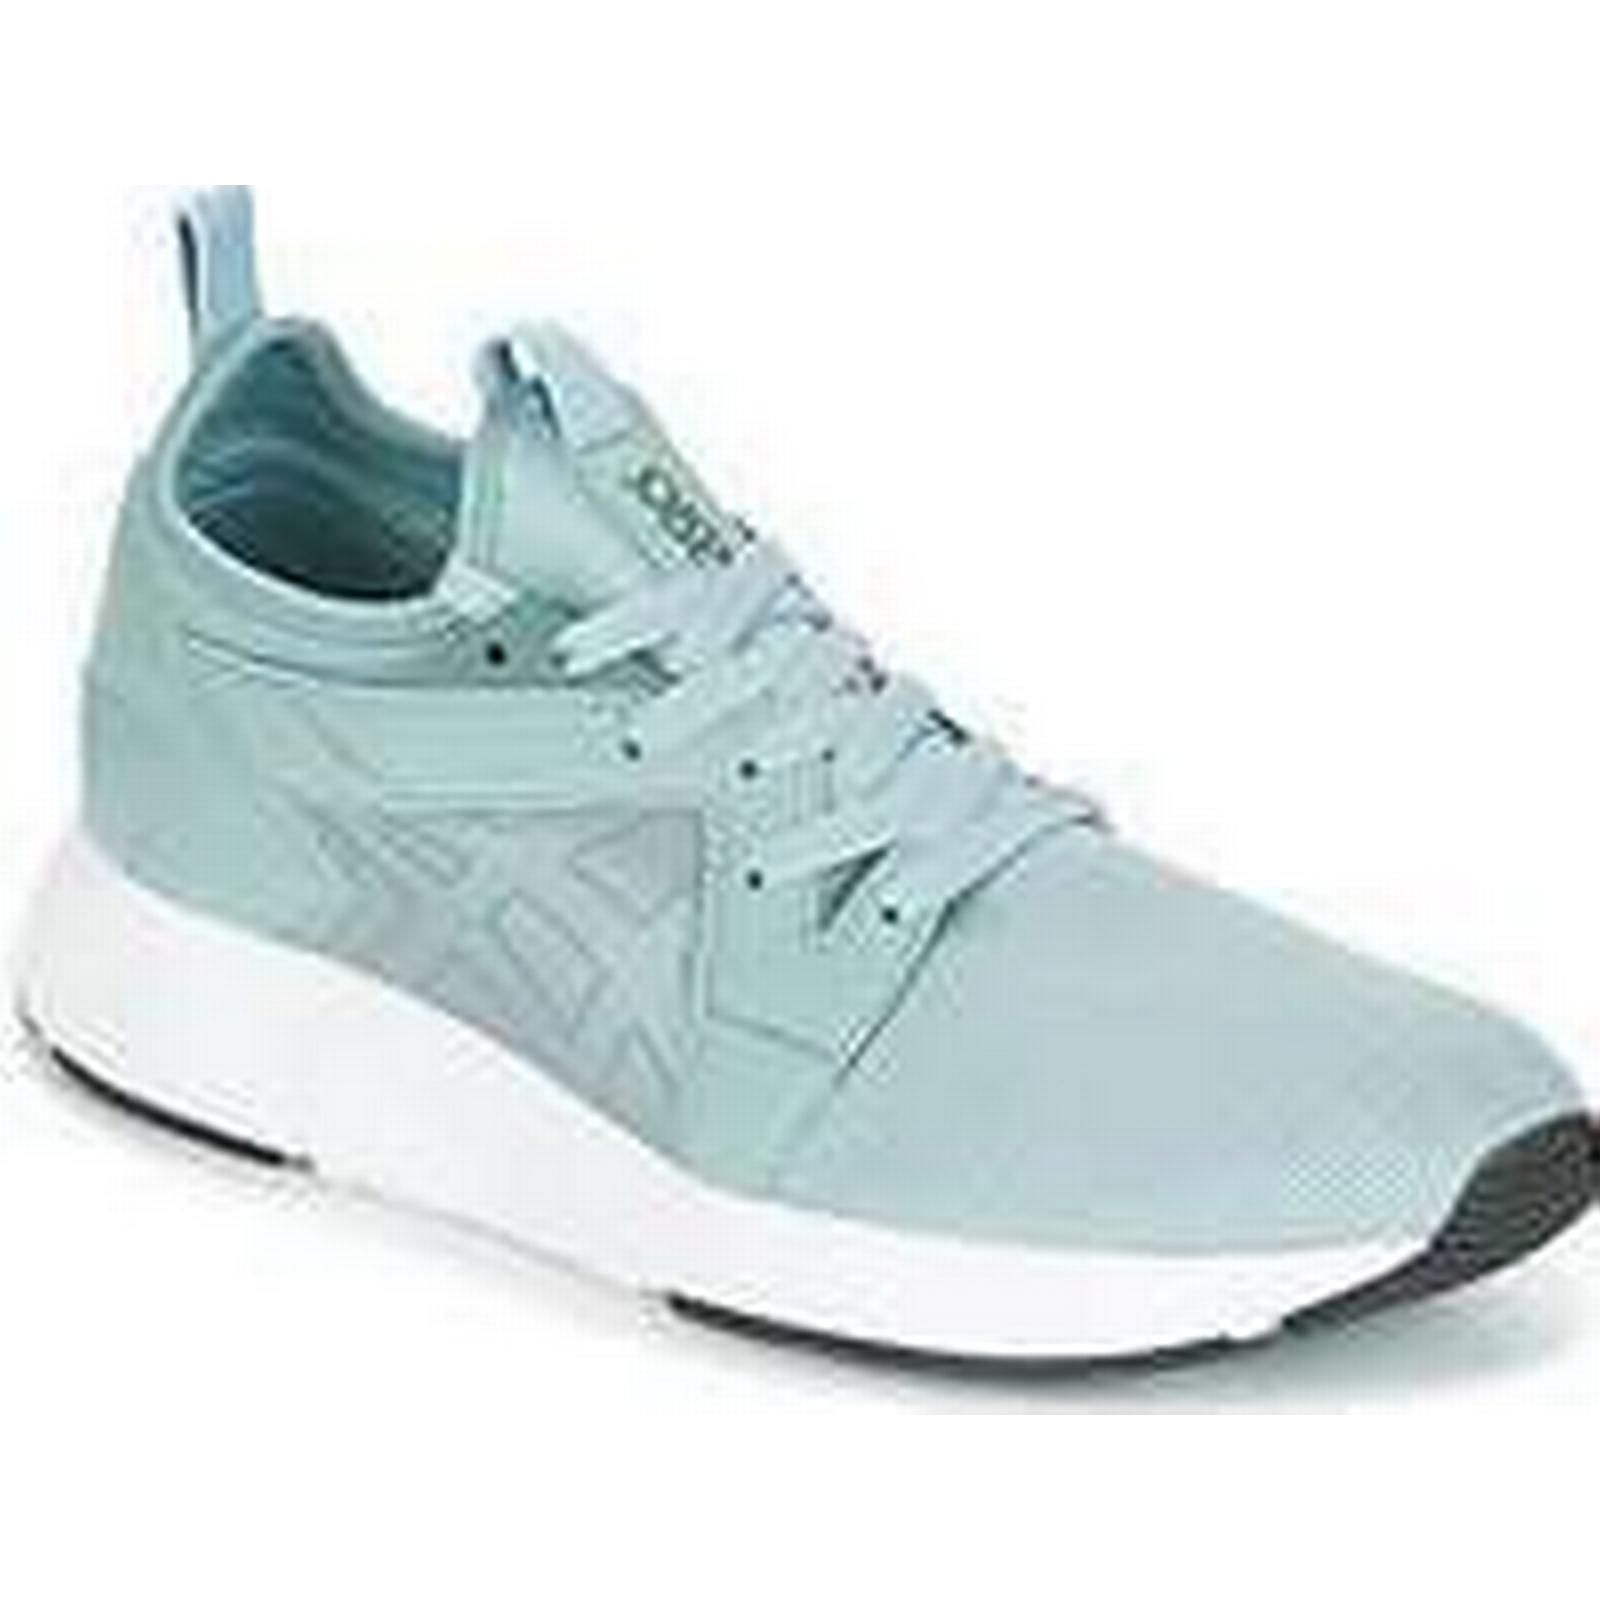 Spartoo.co.uk men's Asics GEL-LYTE V RB men's Spartoo.co.uk Shoes (Trainers) in Green 0fcd82